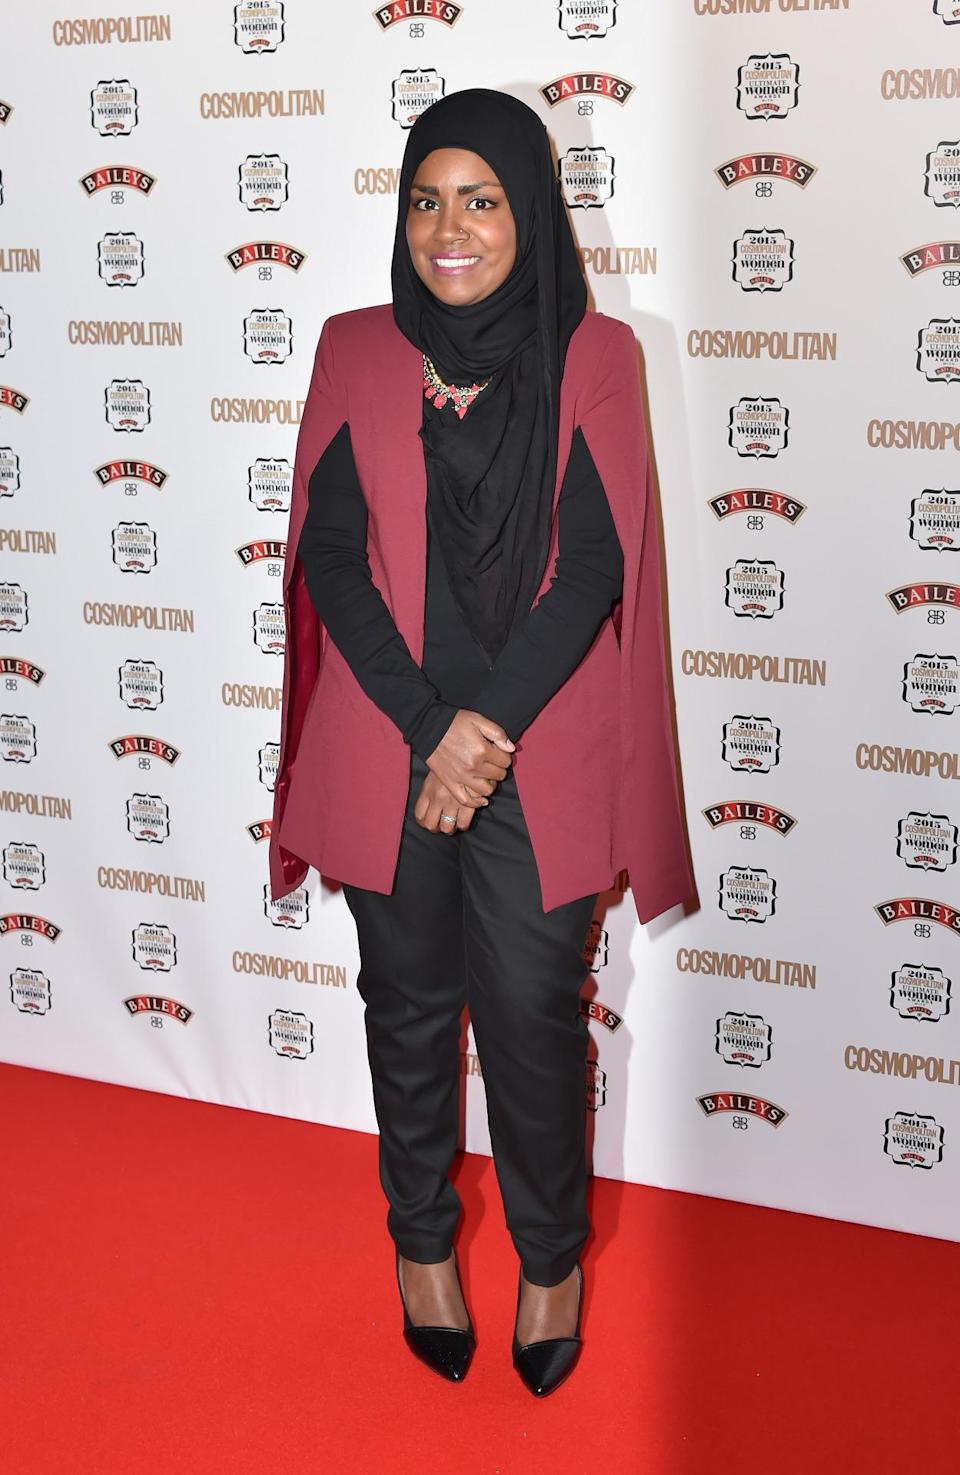 """This year's """"Great British Bake Off"""" winner Nadiya Hussain looked chic in black trousers and a maroon cape. [Photo: Getty]"""